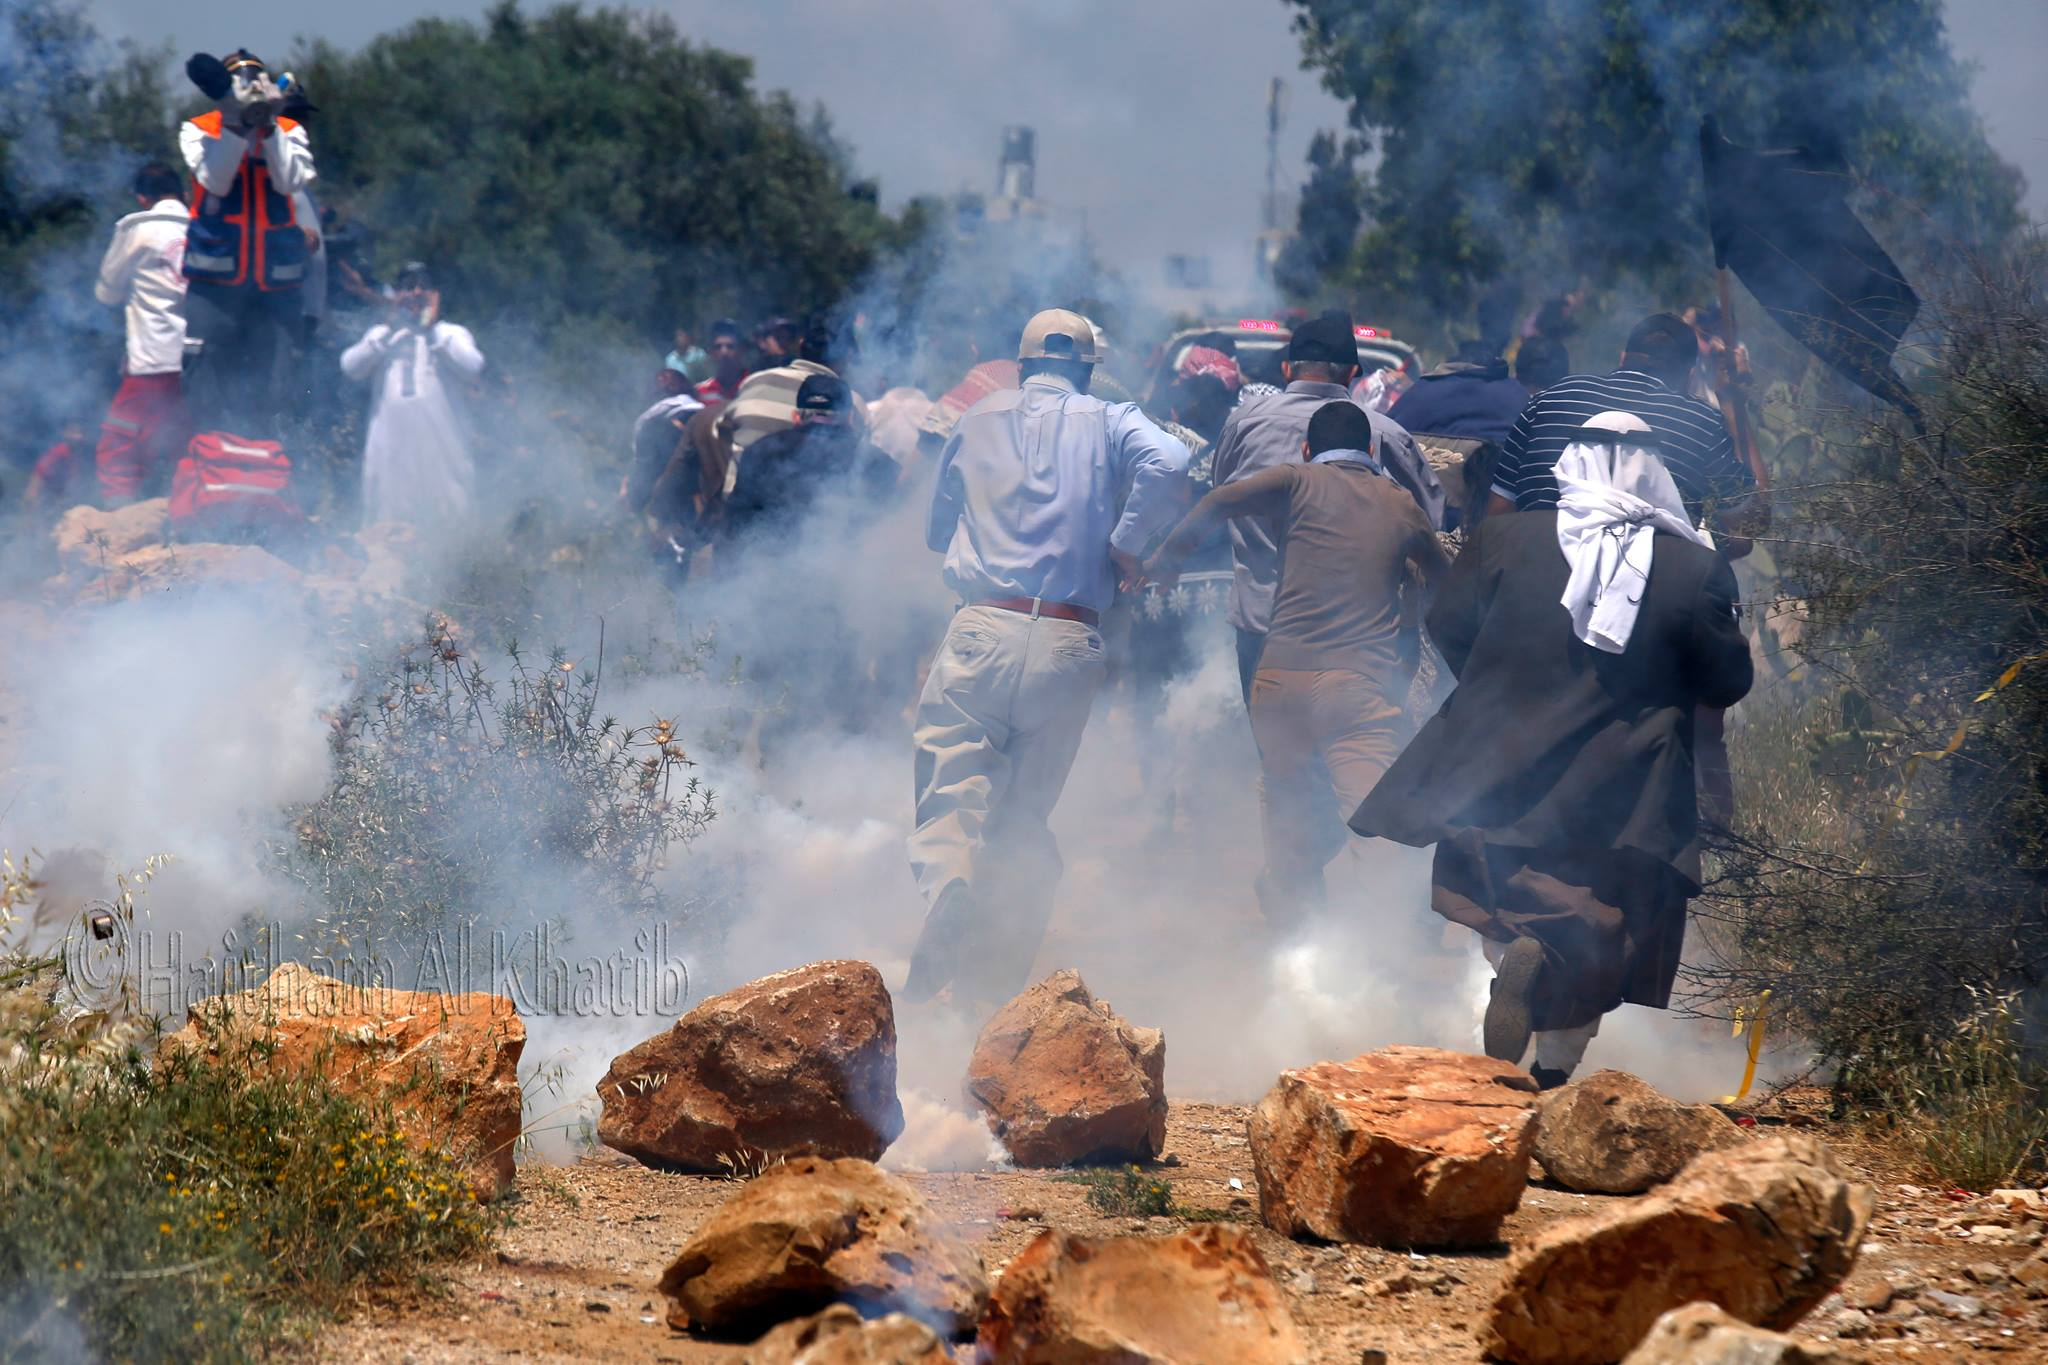 Protestors in Ni'lin running away from tear gas